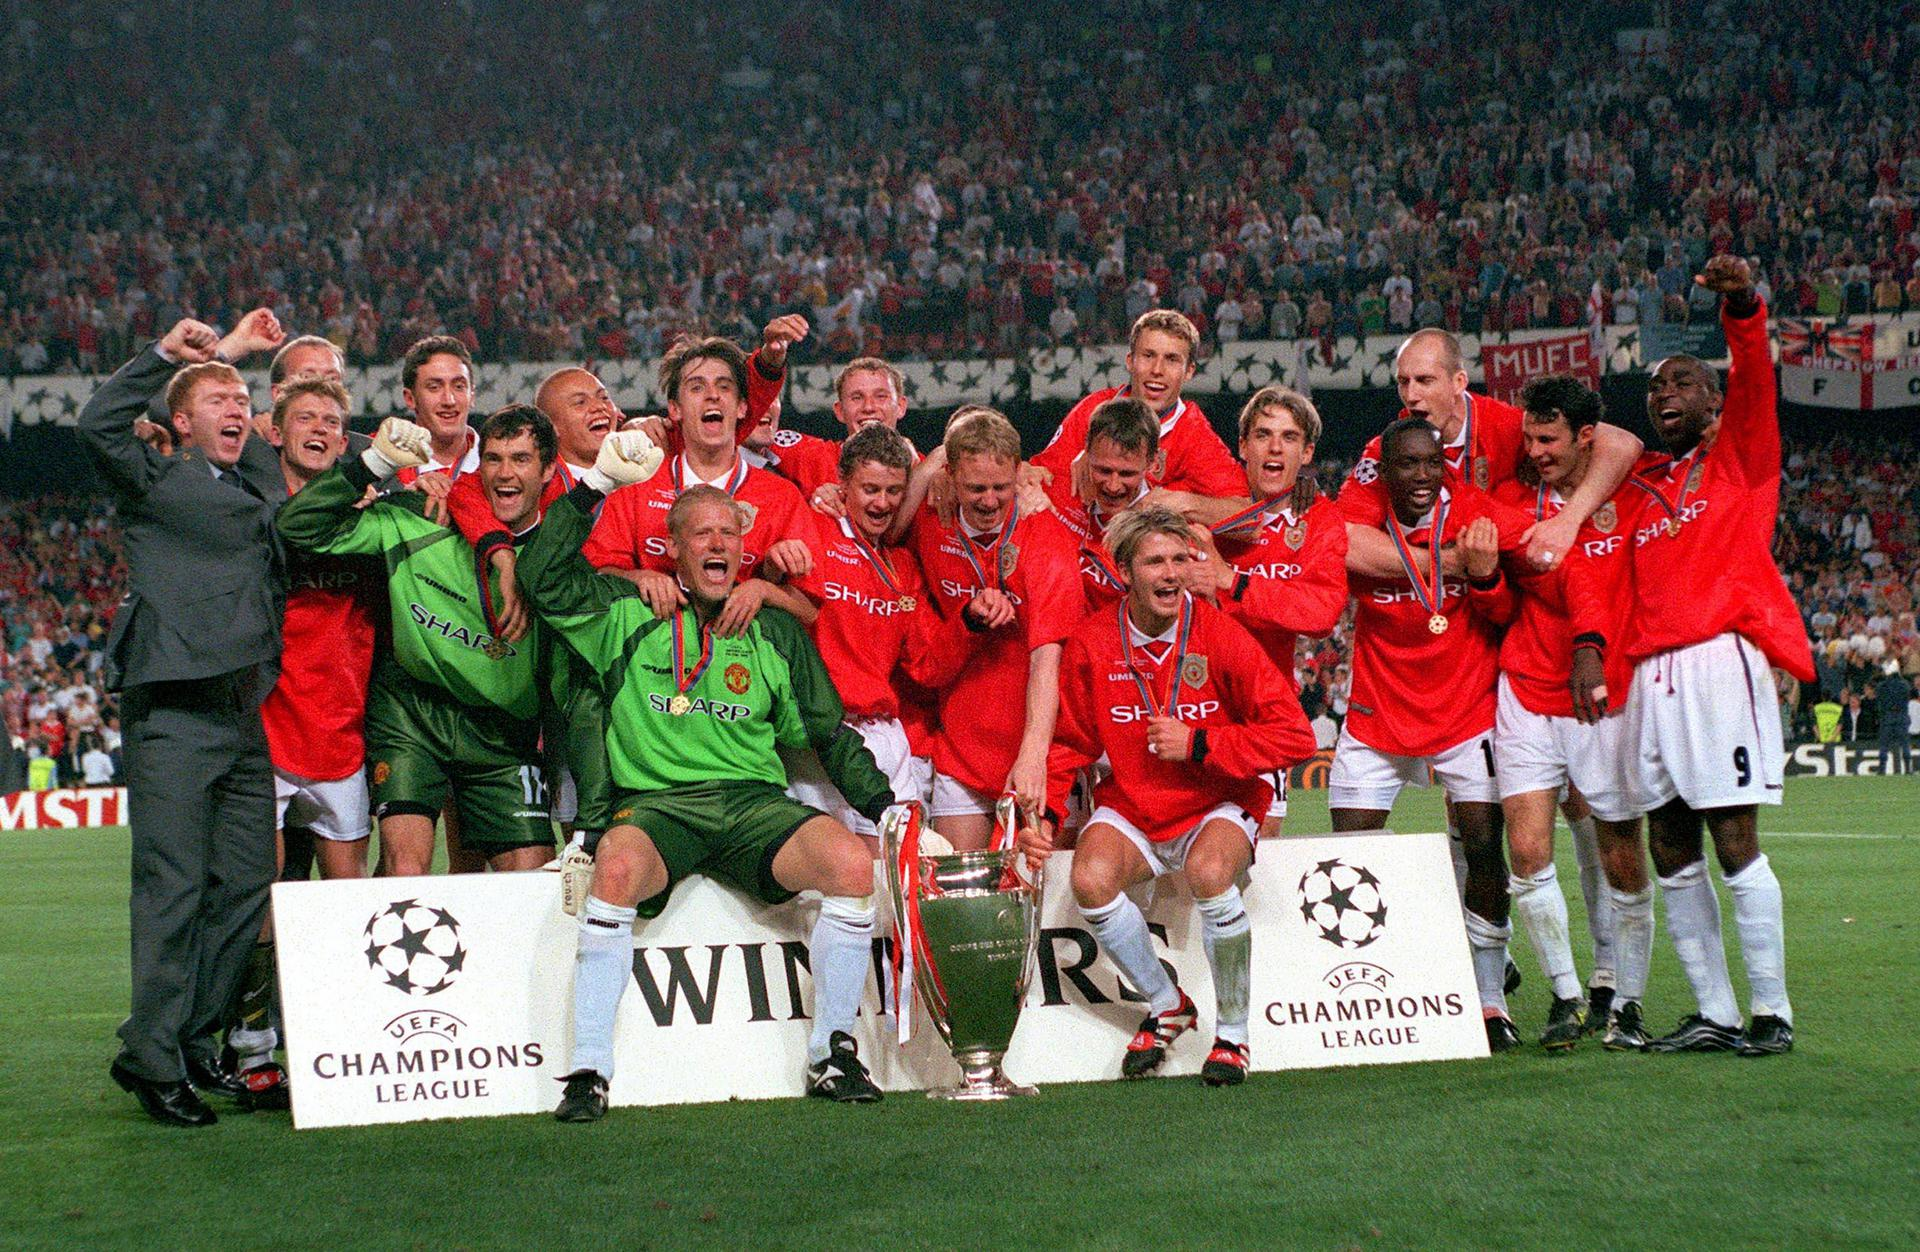 Manchester United players celebrate winning the 1999 UEFA Champions League final